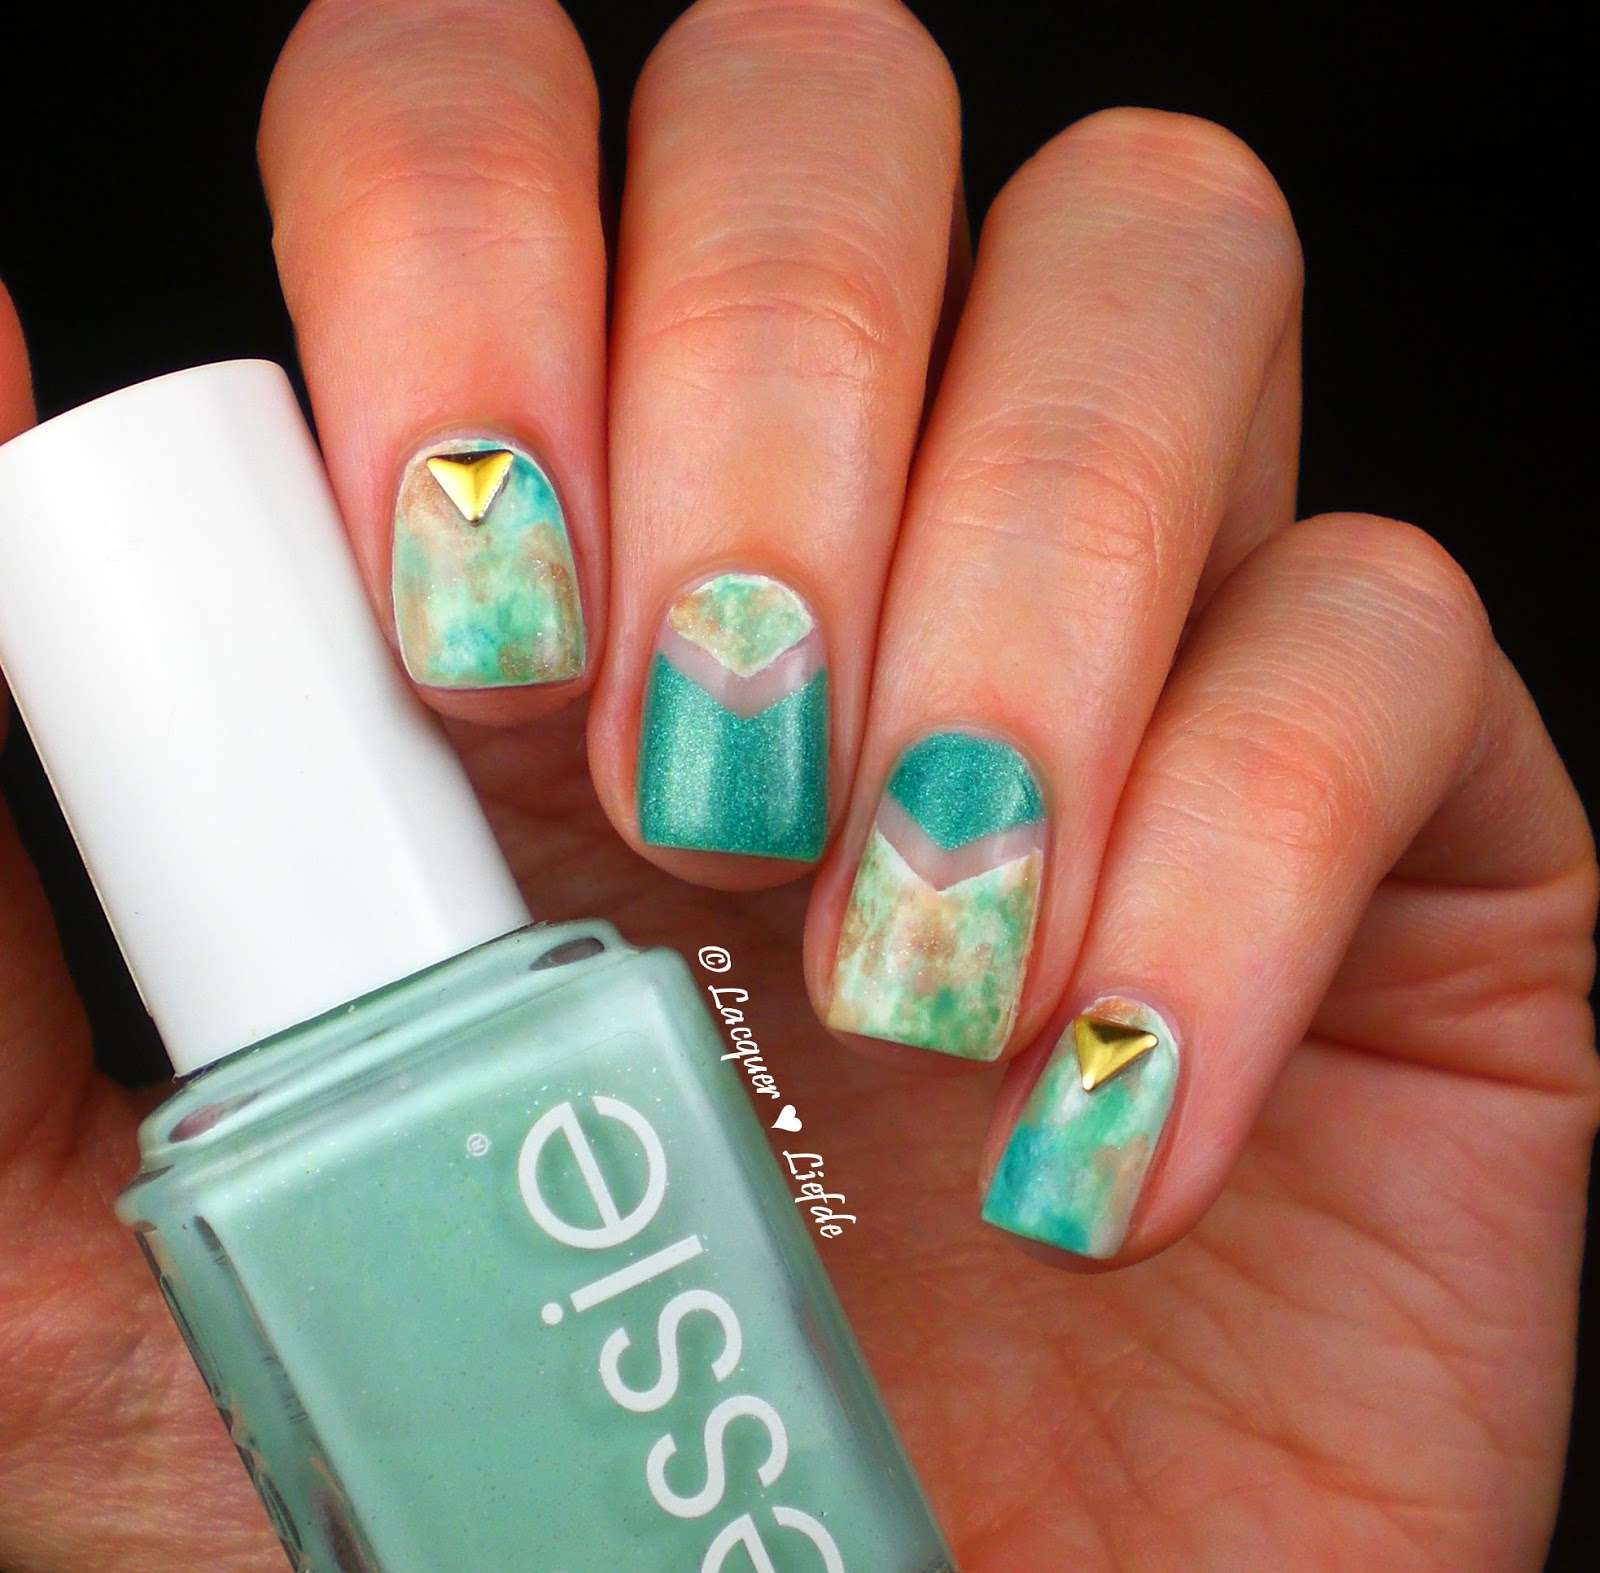 Essie Watercolor Design Nails